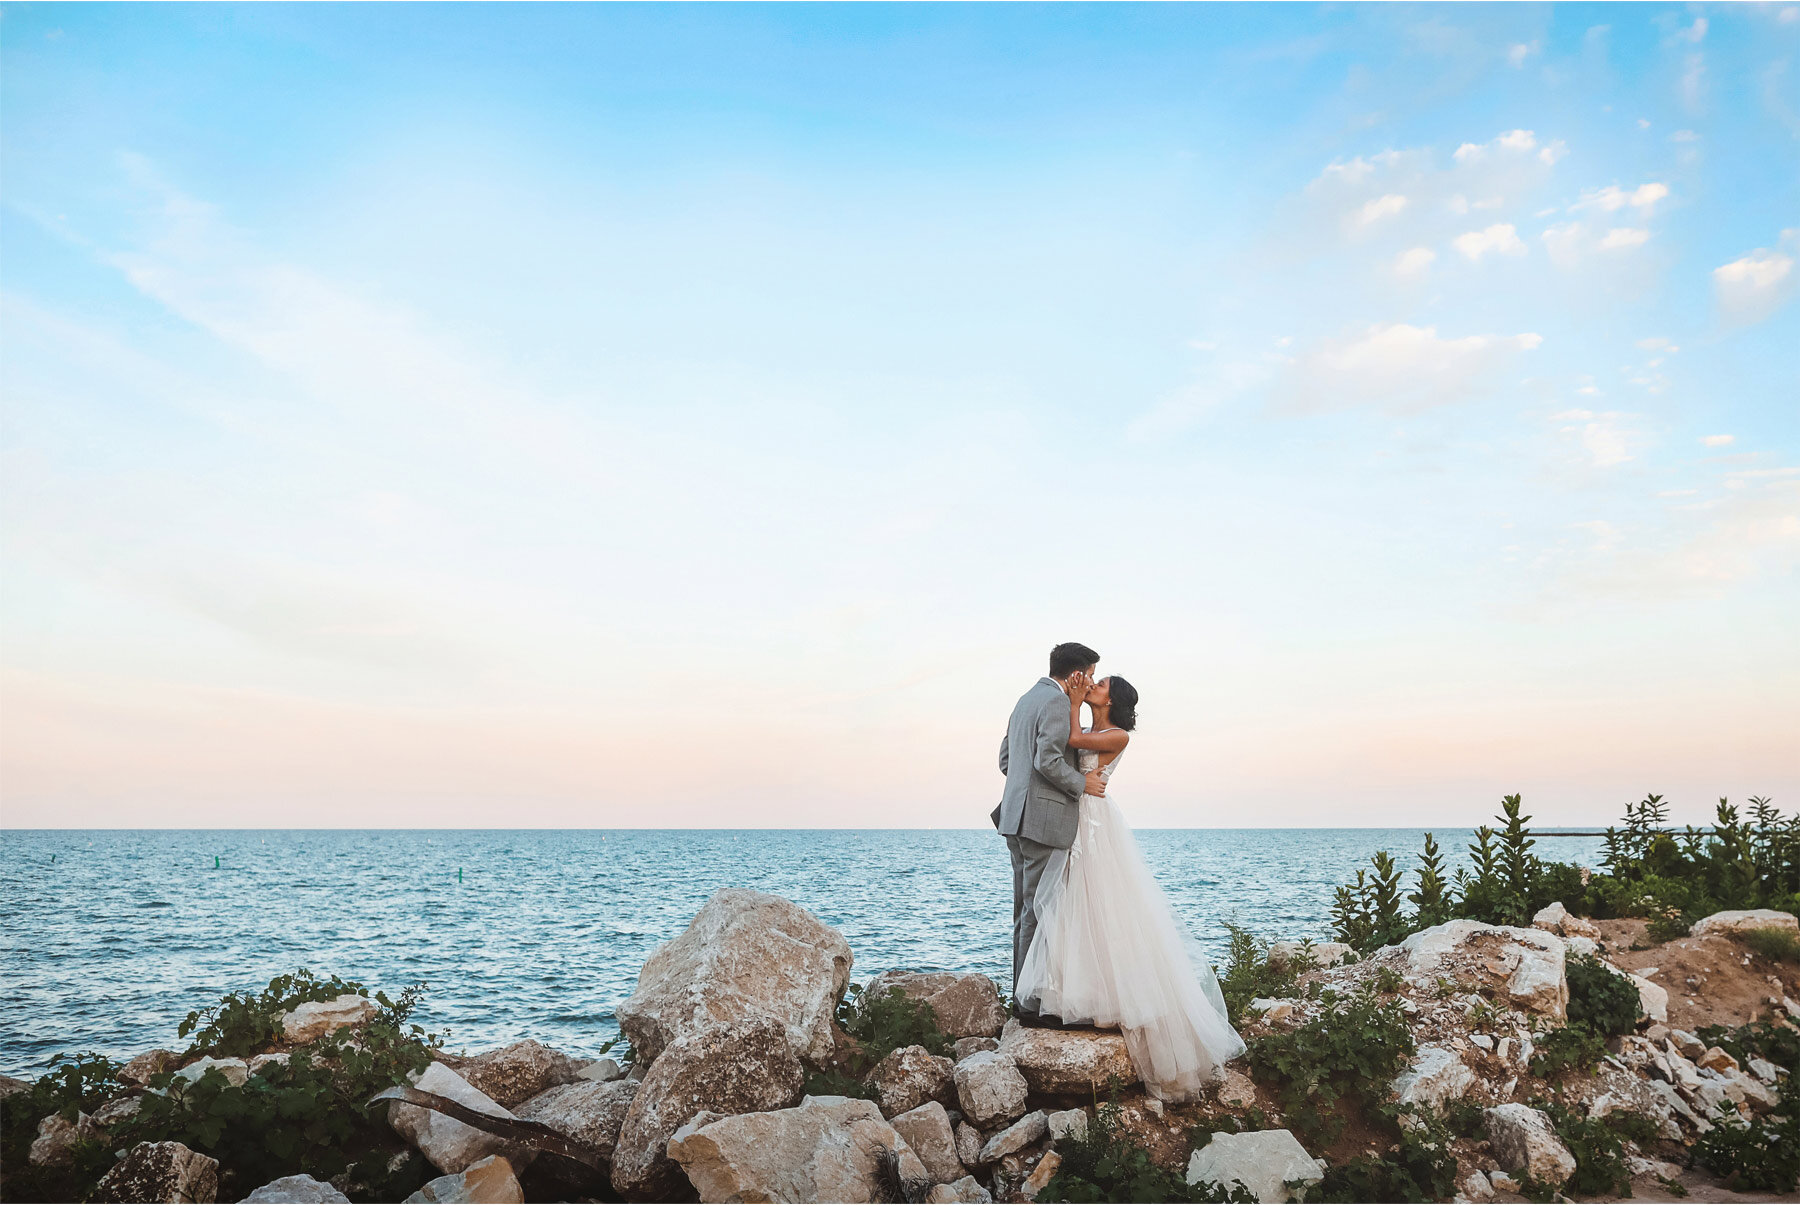 19-Wedding-by-Andrew-Vick-Photography-Chicago-Illinois-Groom-Bride-Shore-Beach-Lake-Michigan-Ashley-and-Nicholas.jpg